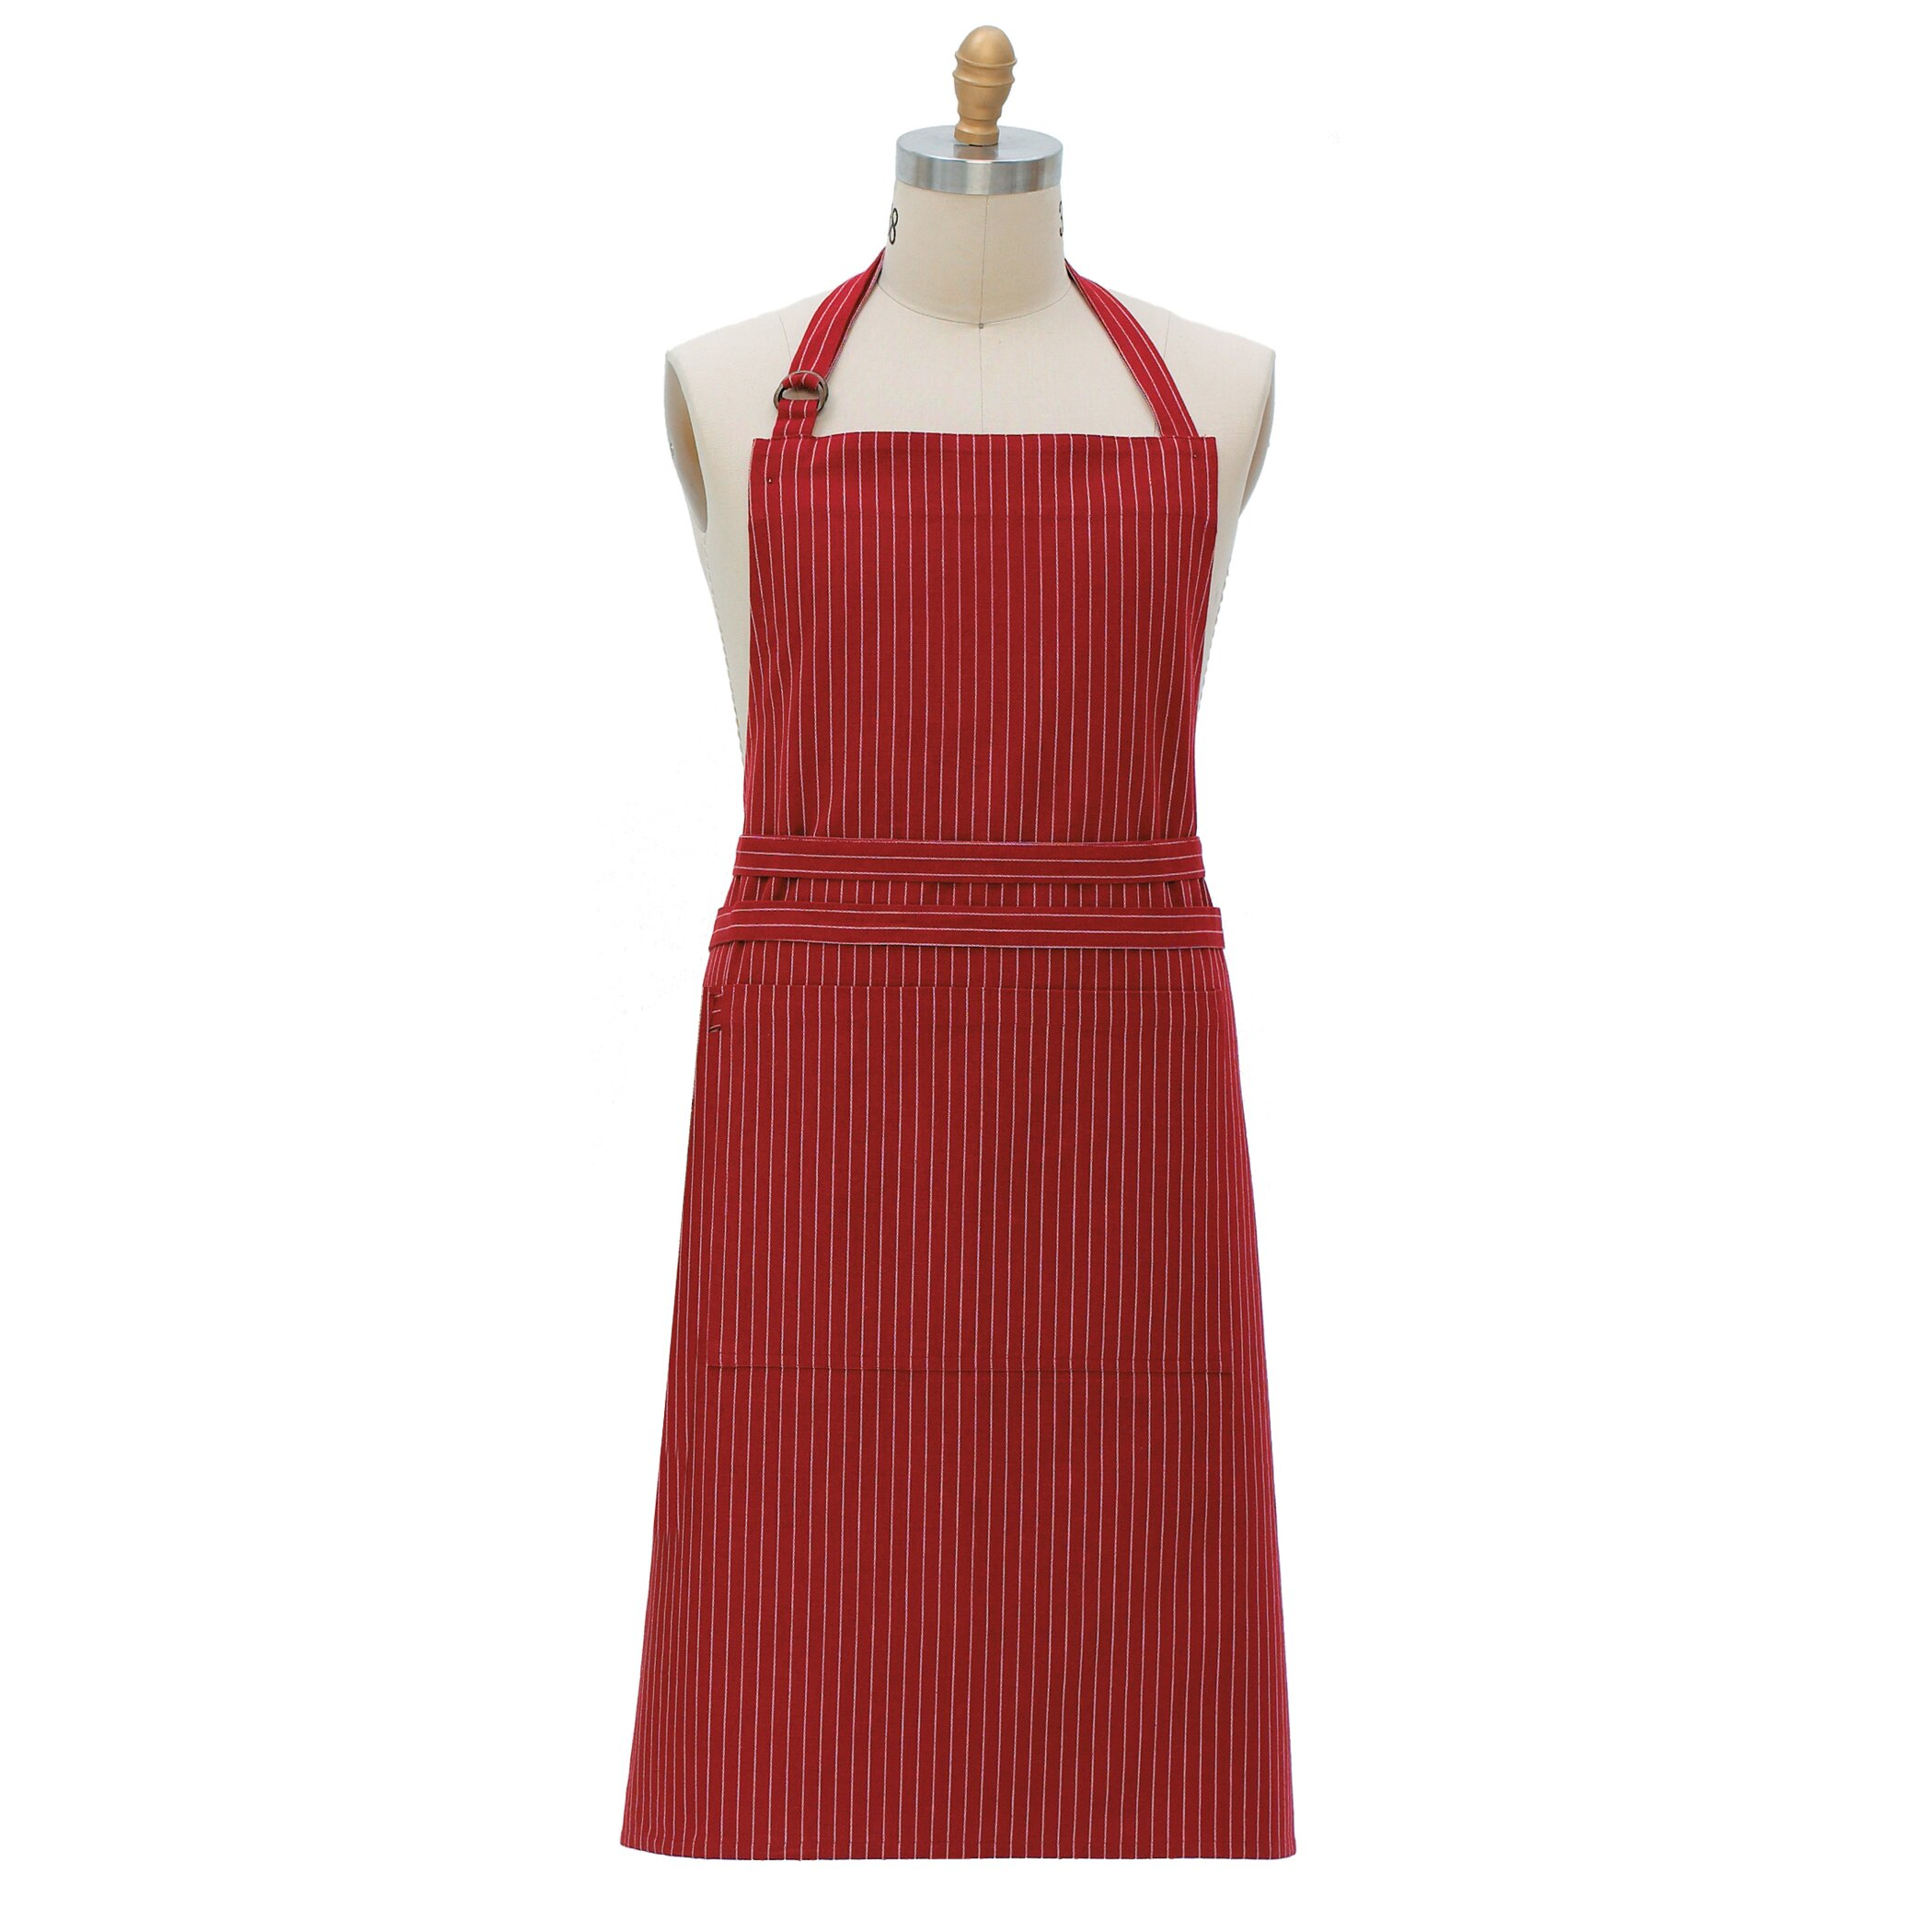 Kay dee designs pin striped apron reviews wayfair for Apron designs and kitchen apron styles